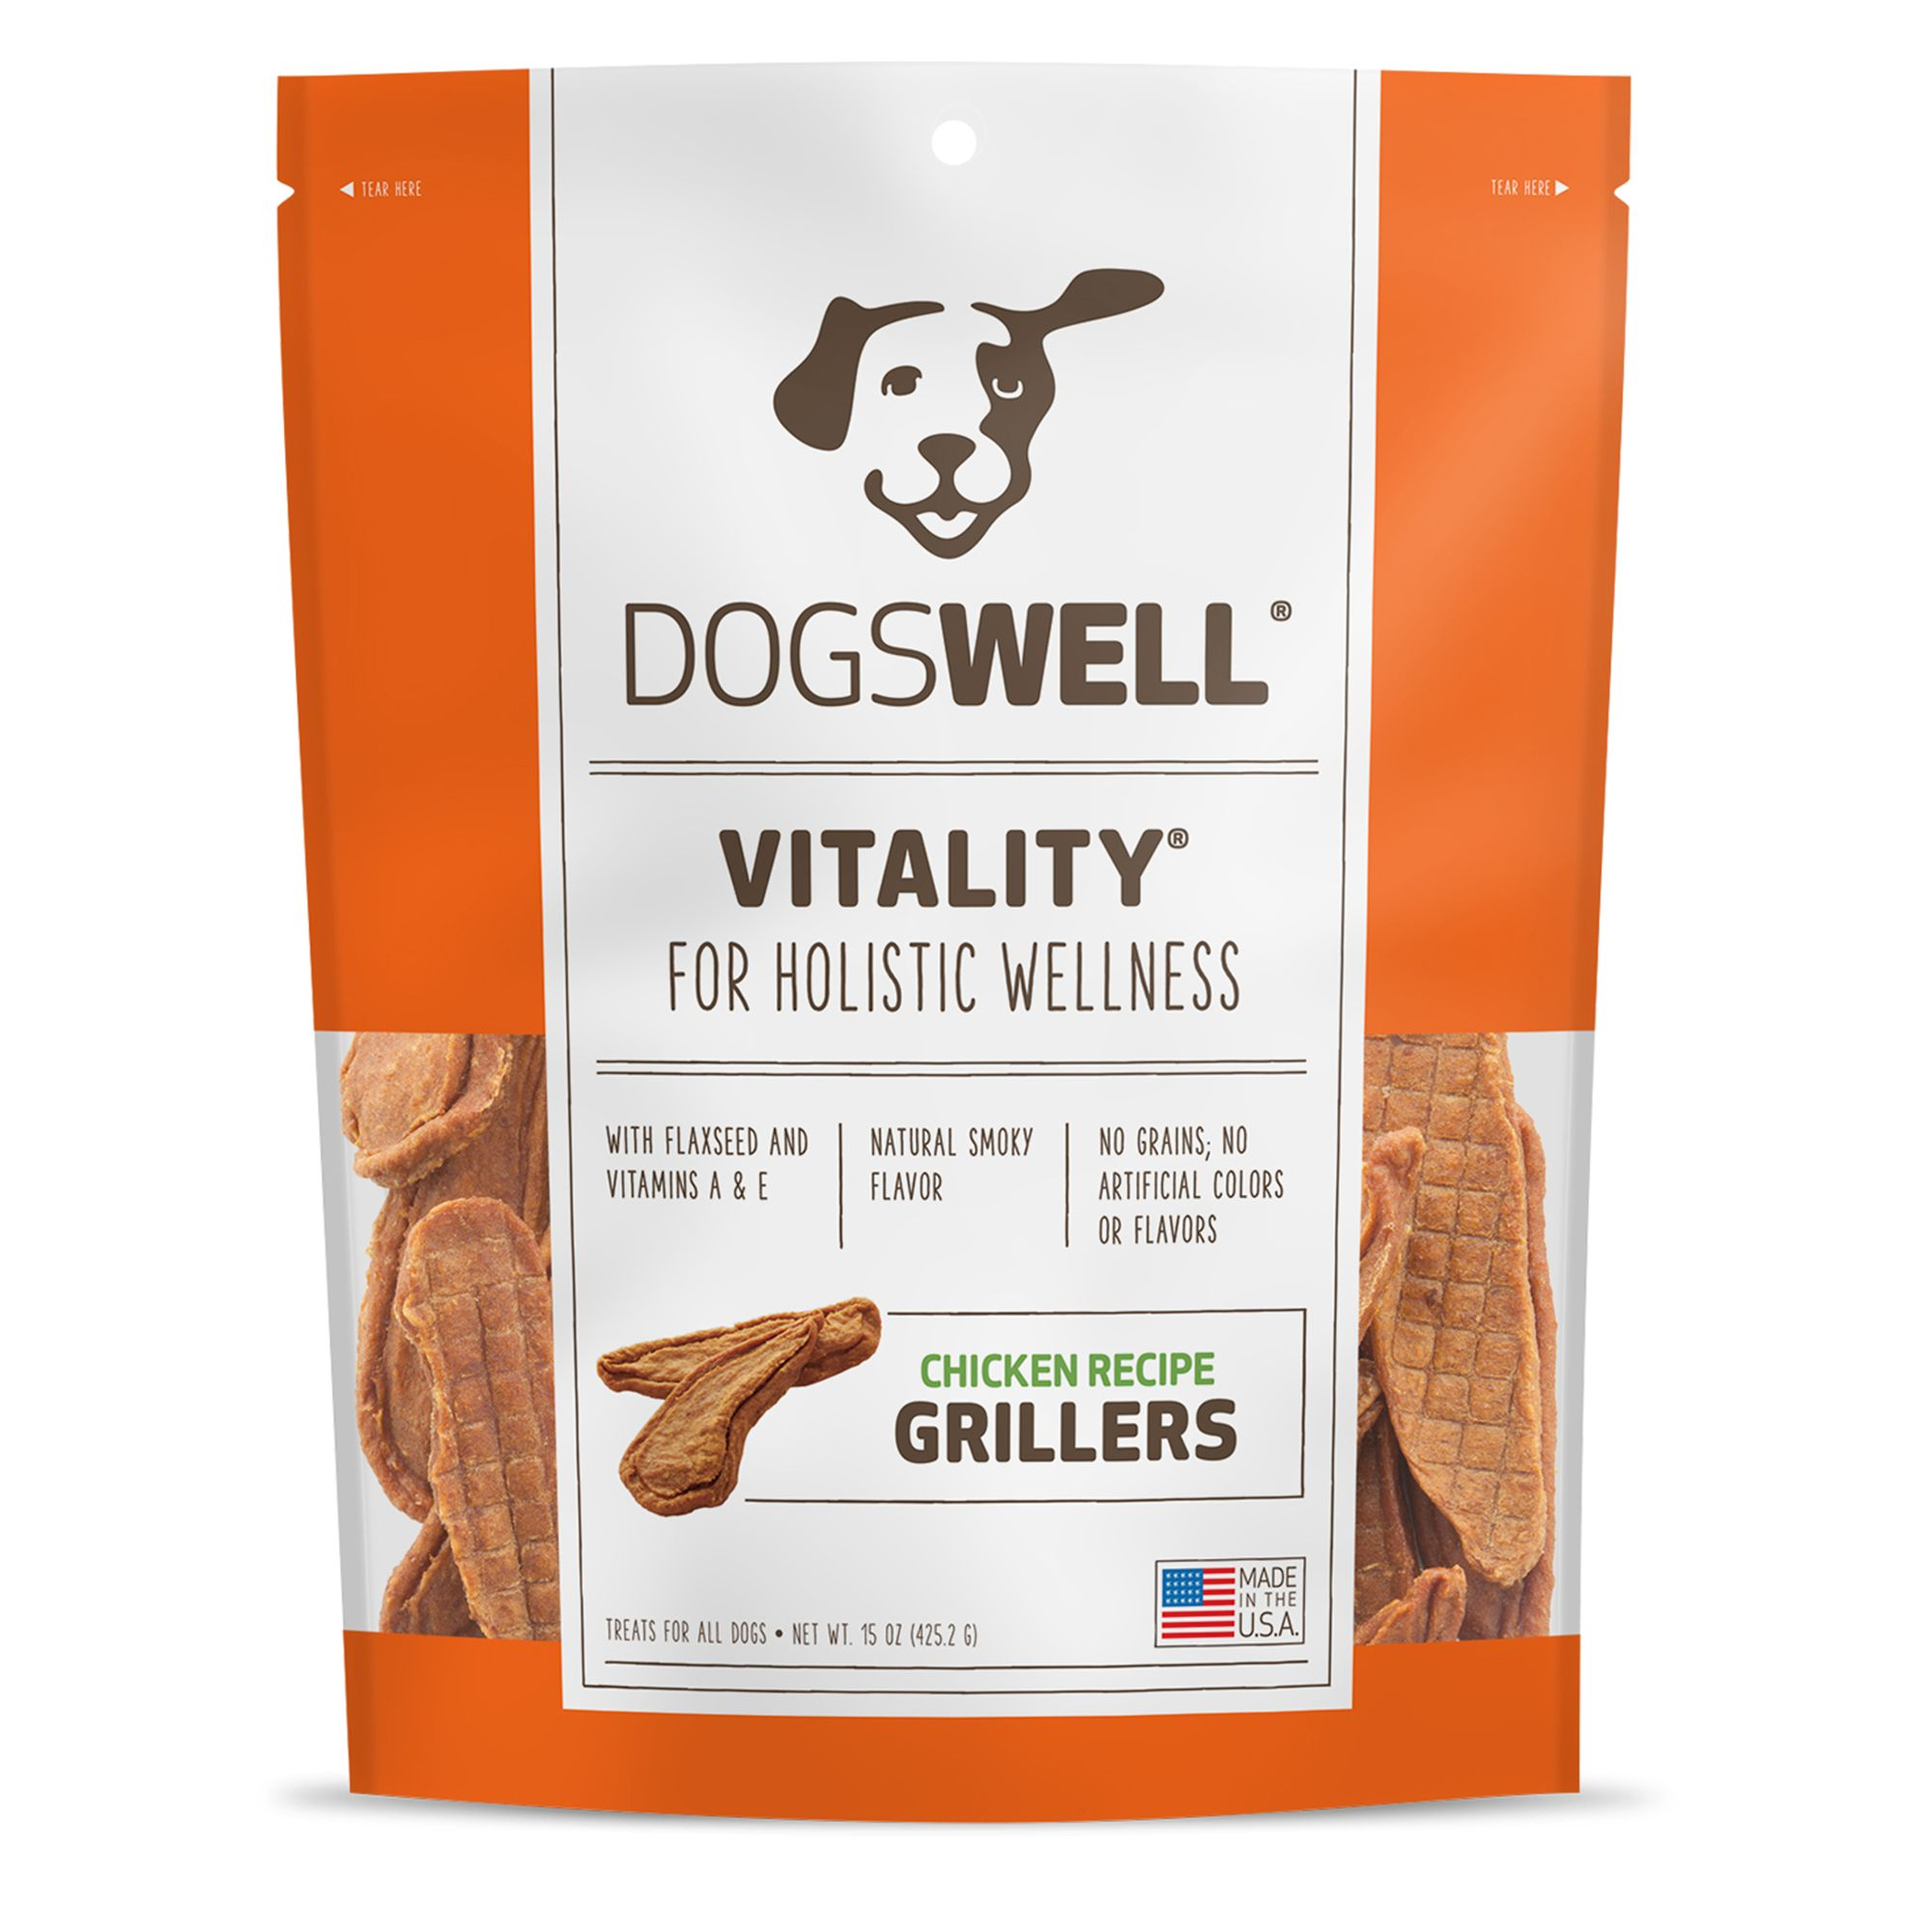 Dogswell Happy Hips Grillers Dog Treat - Grain Free, Chicken size: 15 Oz, Duck, Griller Treat, Adult 5271916